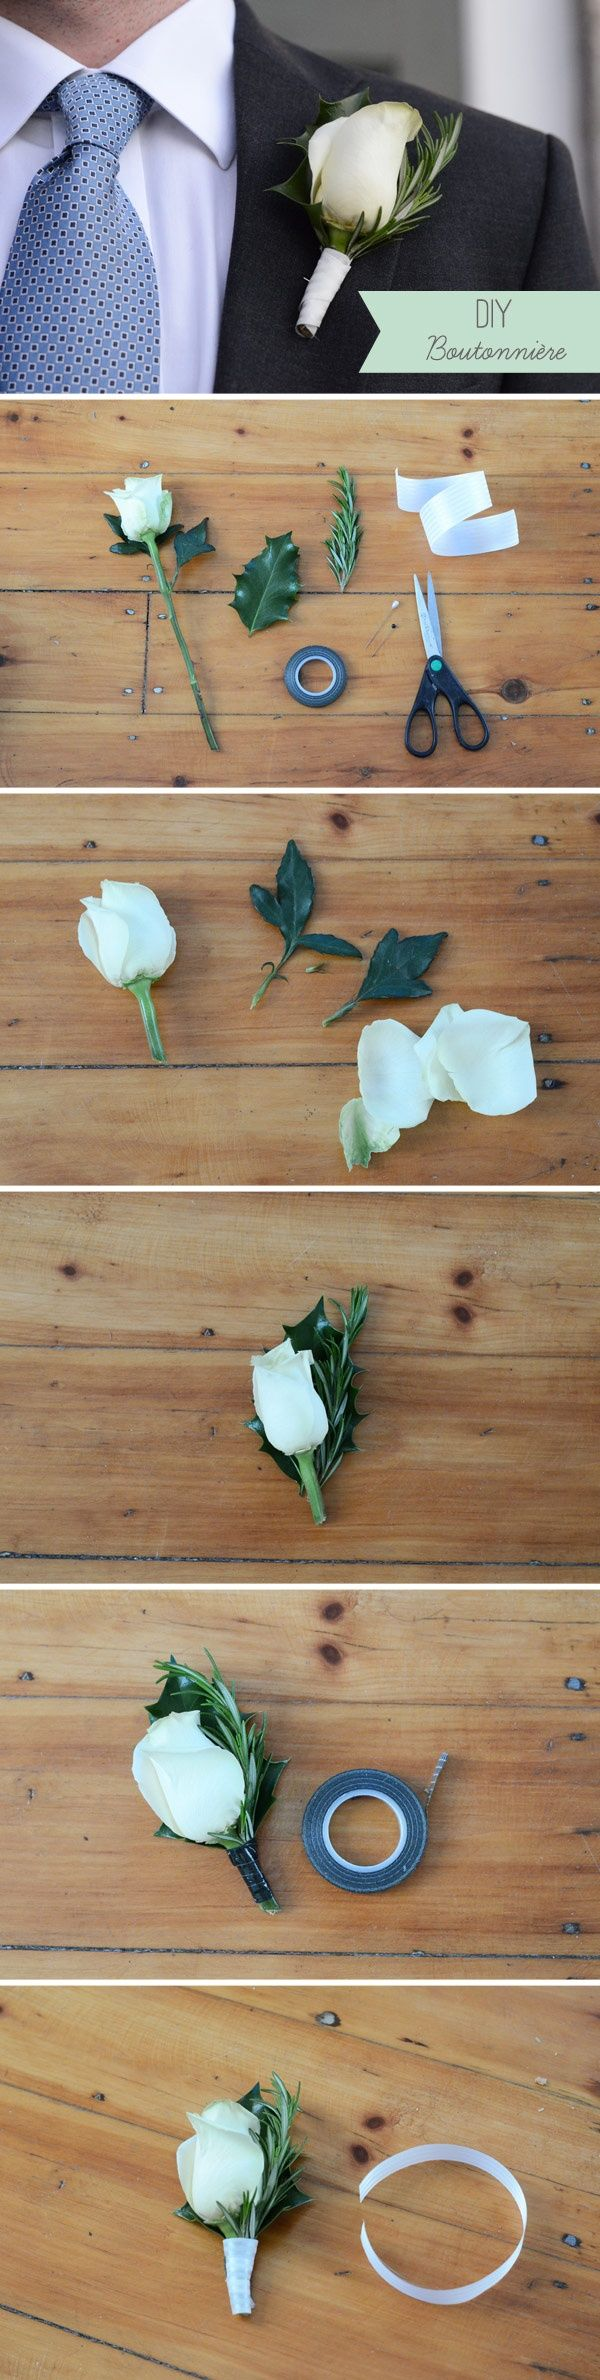 Diy boutonniere diy buttonhole for the groom easy wedding diy diy boutonniere super simple wedding diy floral project wedding diy solutioingenieria Image collections